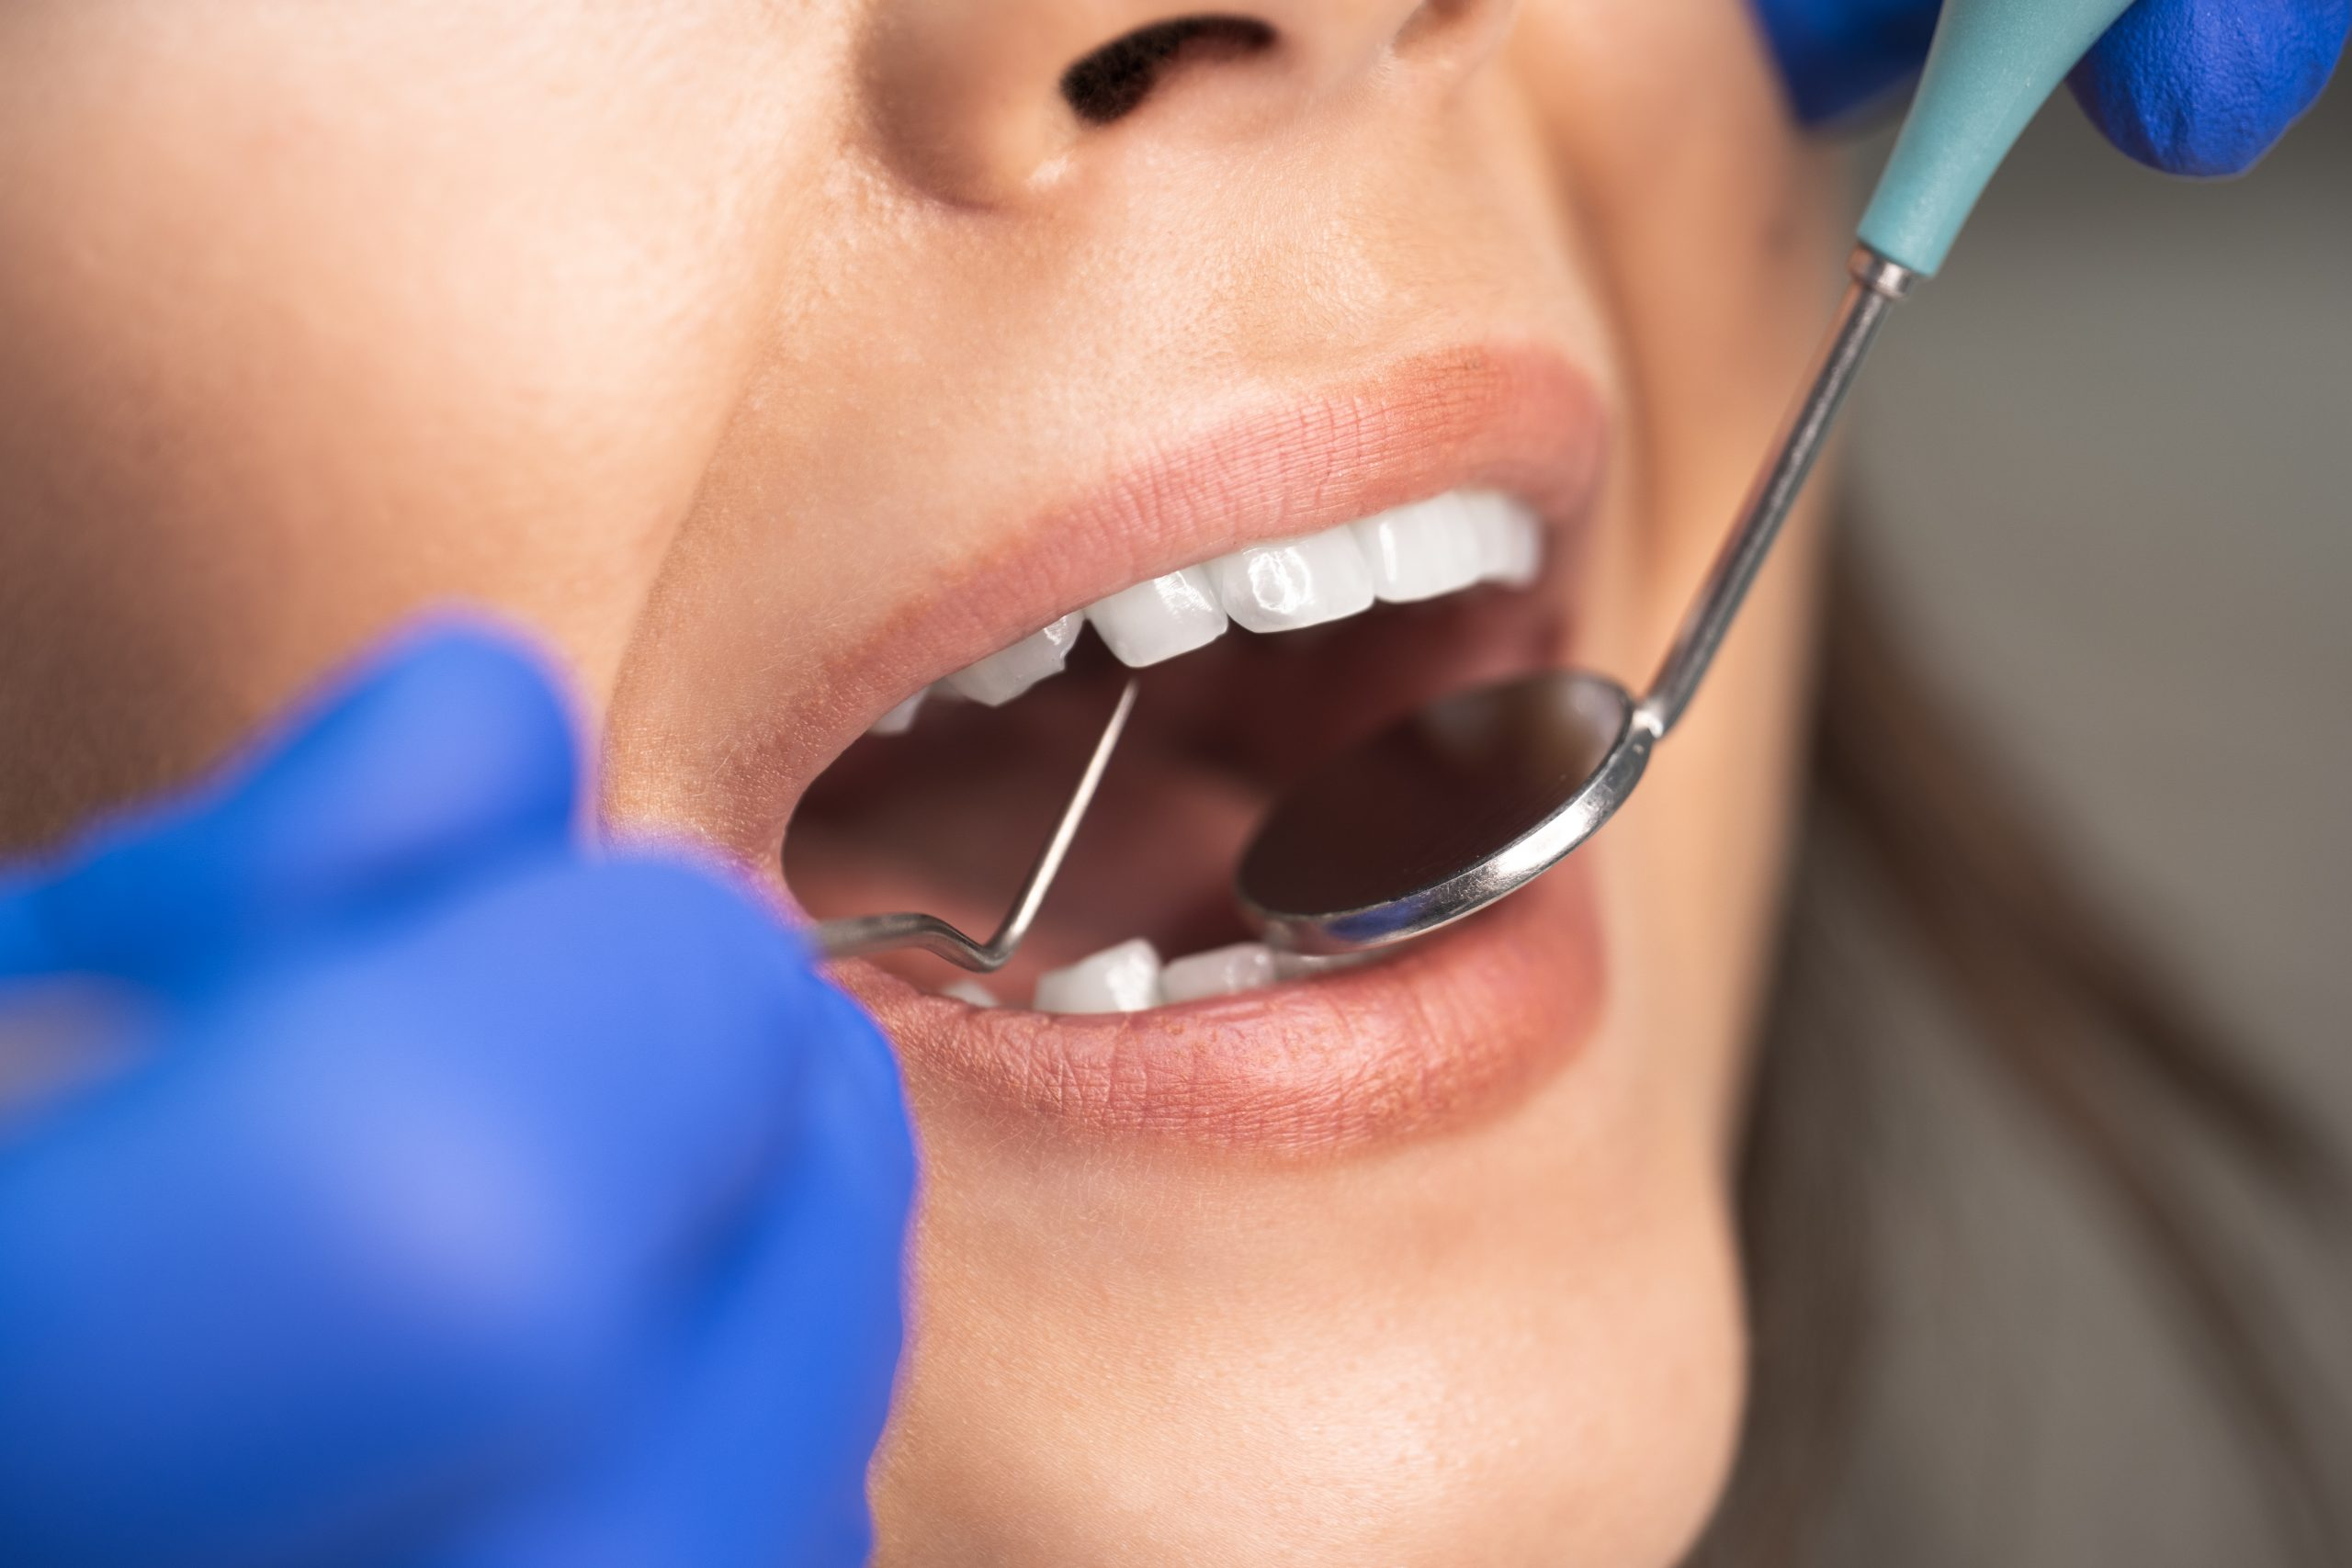 smiling beautiful happy woman patient examined by dentist in blue gloves using dental mirror and scaler sitting in dental clinic close up.